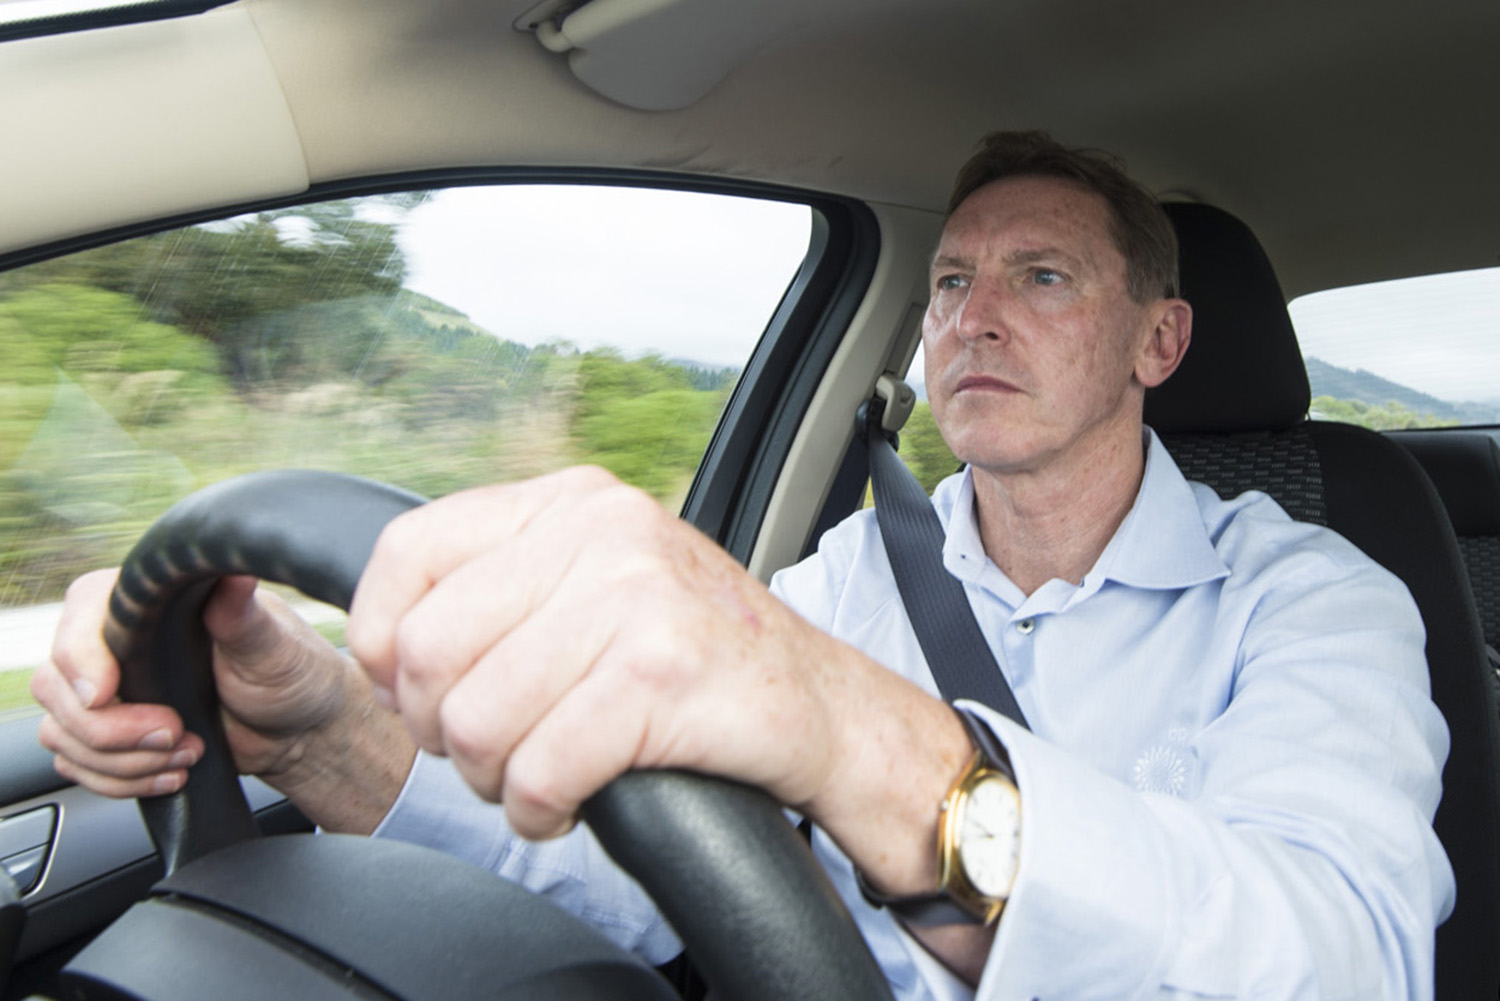 Aarontait Copyrighted 2014 285 Documentary Photographer New Zealand Editorial Reportage Customer Environmental Human Resources Interview Real Natural Light Traveler Car Driver Safety On The Road Aaron Tait Photography Queensland Photographer